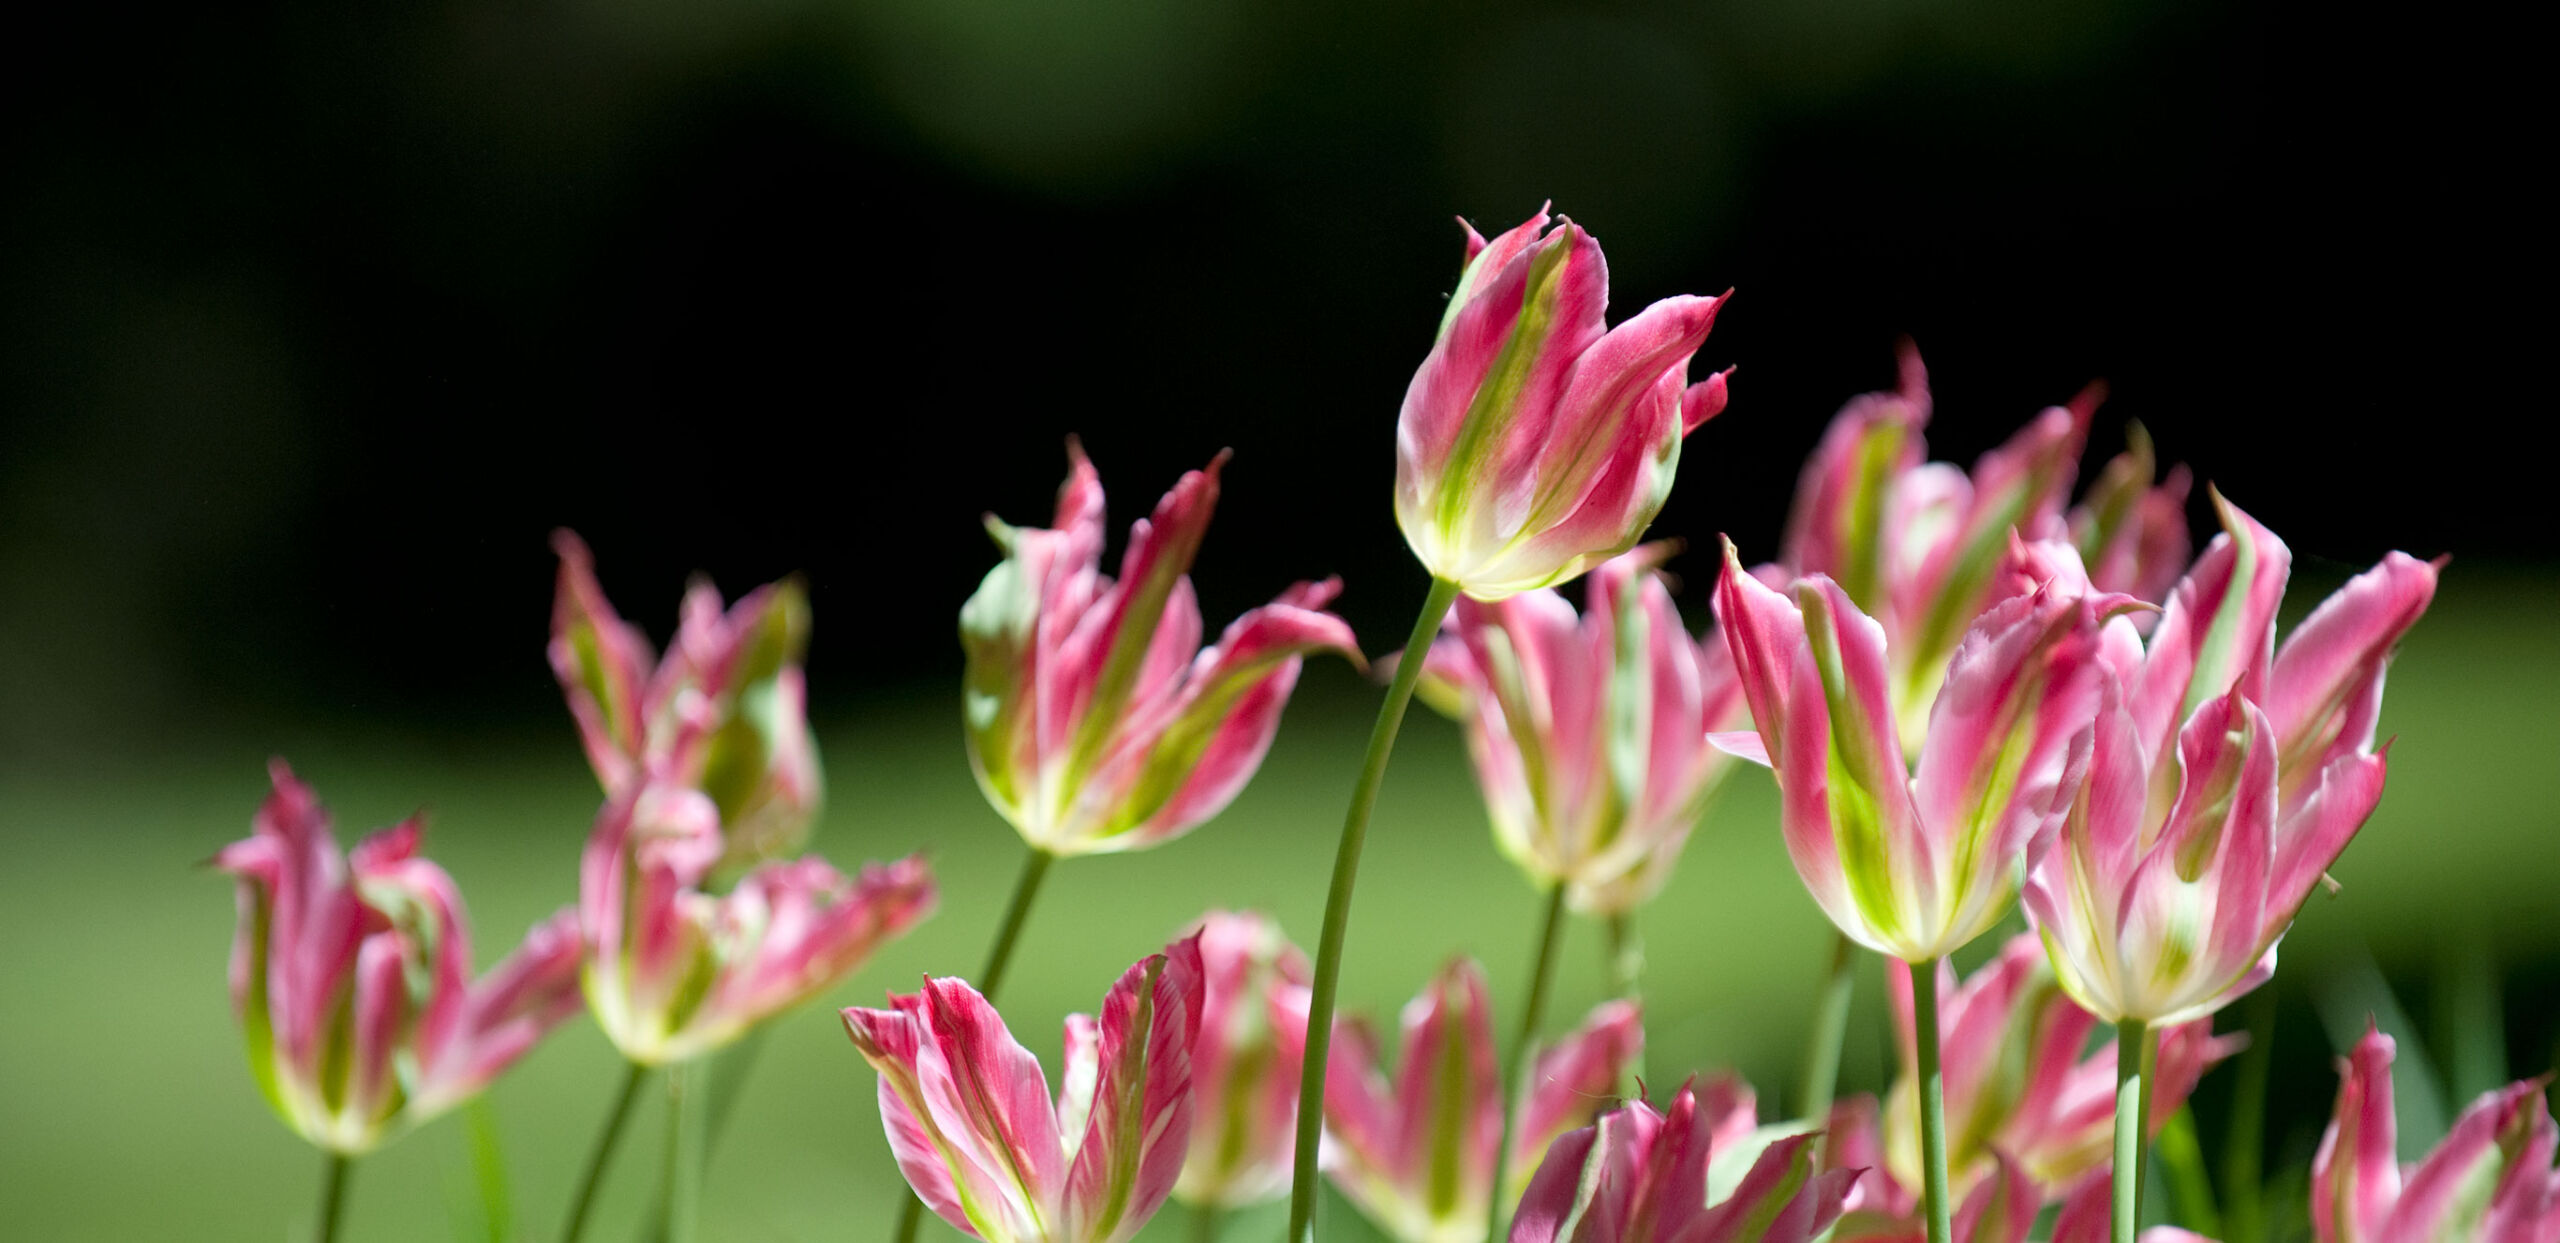 Tulip heads waving in a field.